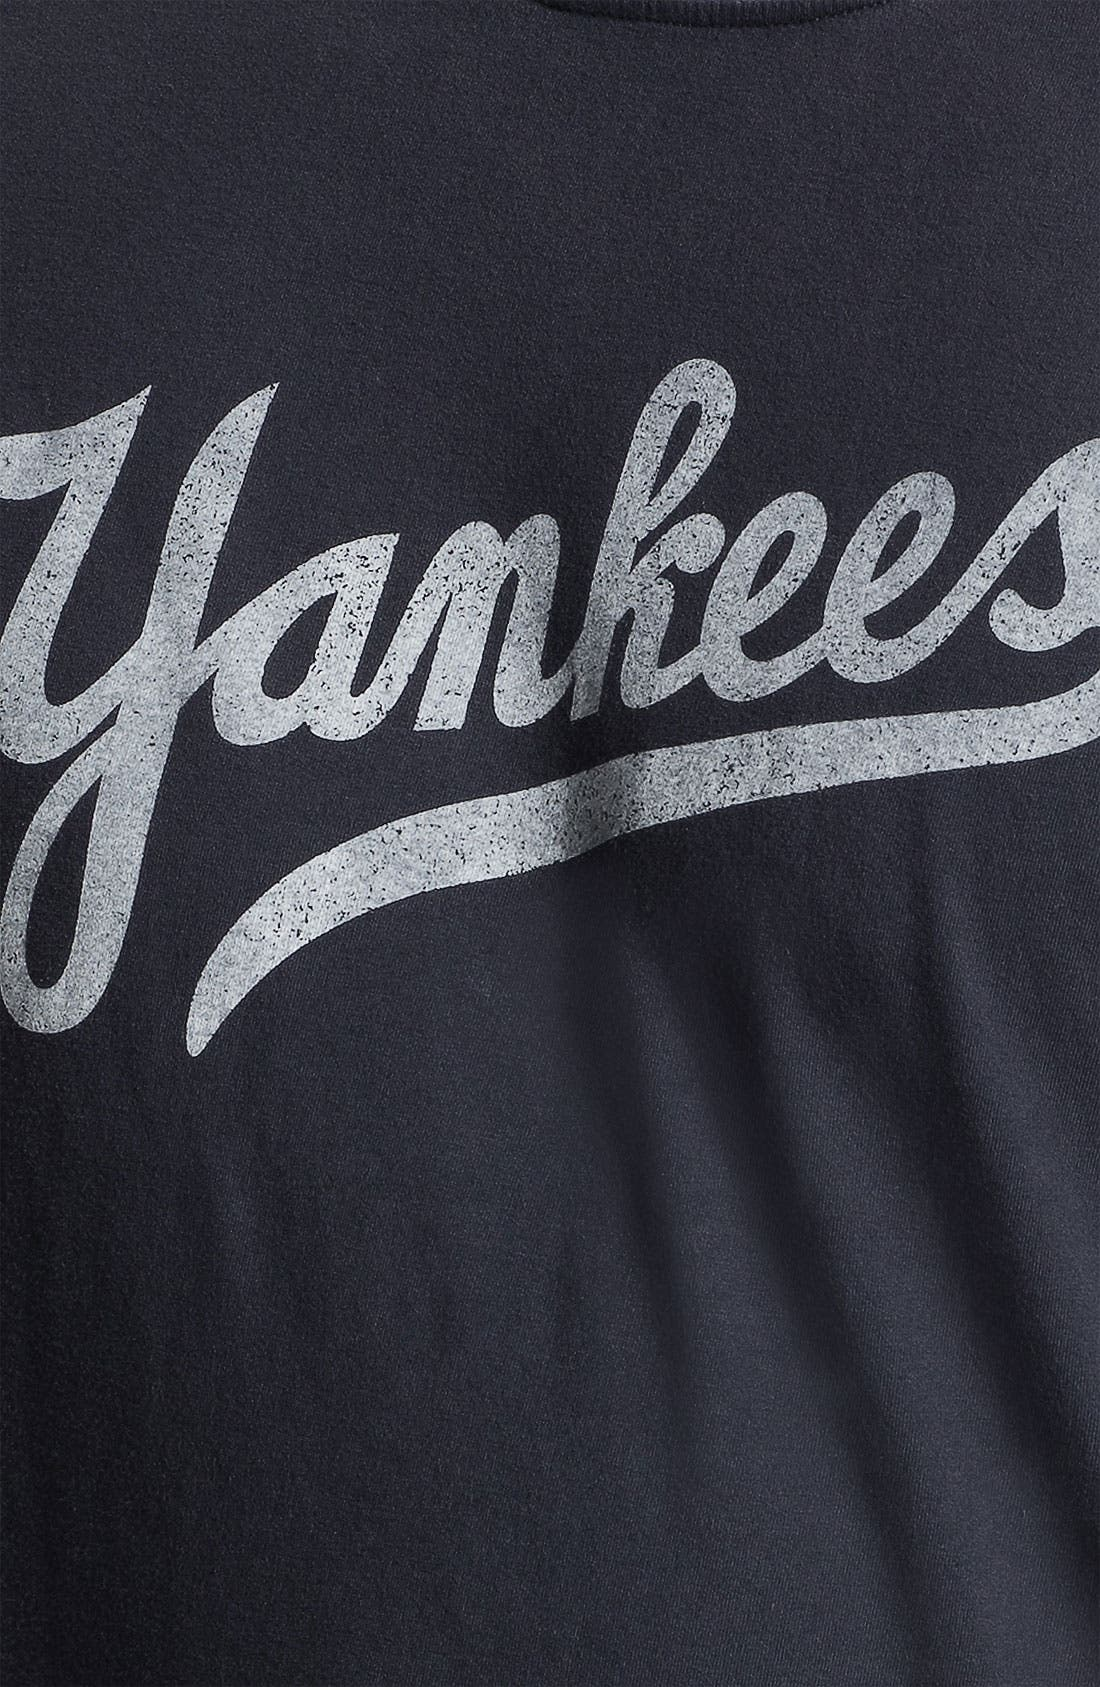 Alternate Image 3  - Red Jacket 'New York Yankees' Trim Fit Ringer T-Shirt (Men)